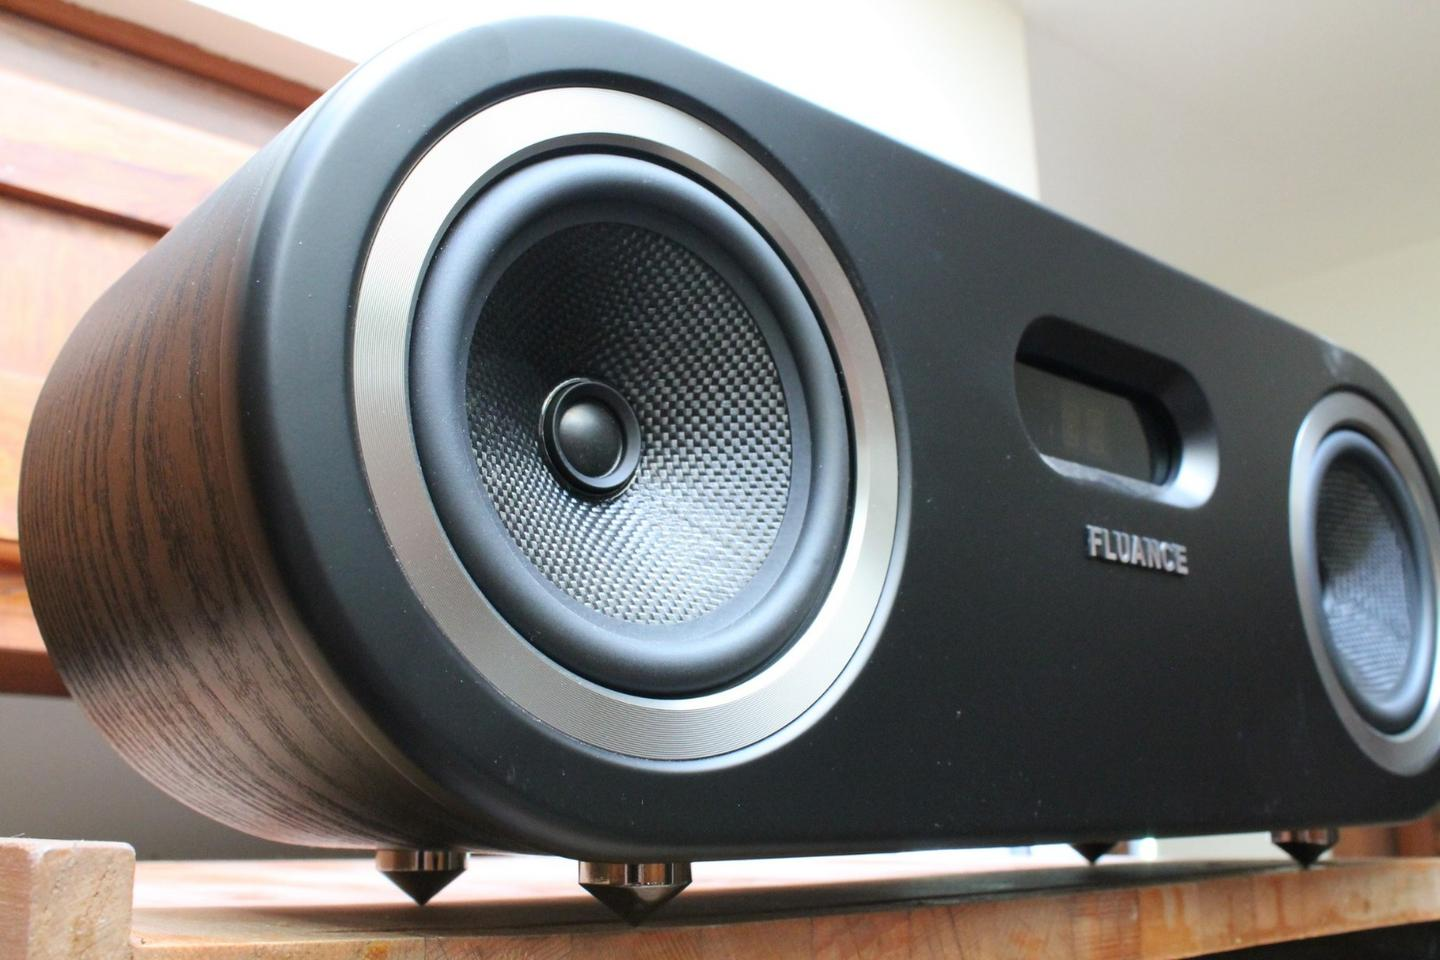 The Fluance is a $200 wireless speaker designed to fill a room with sound and style